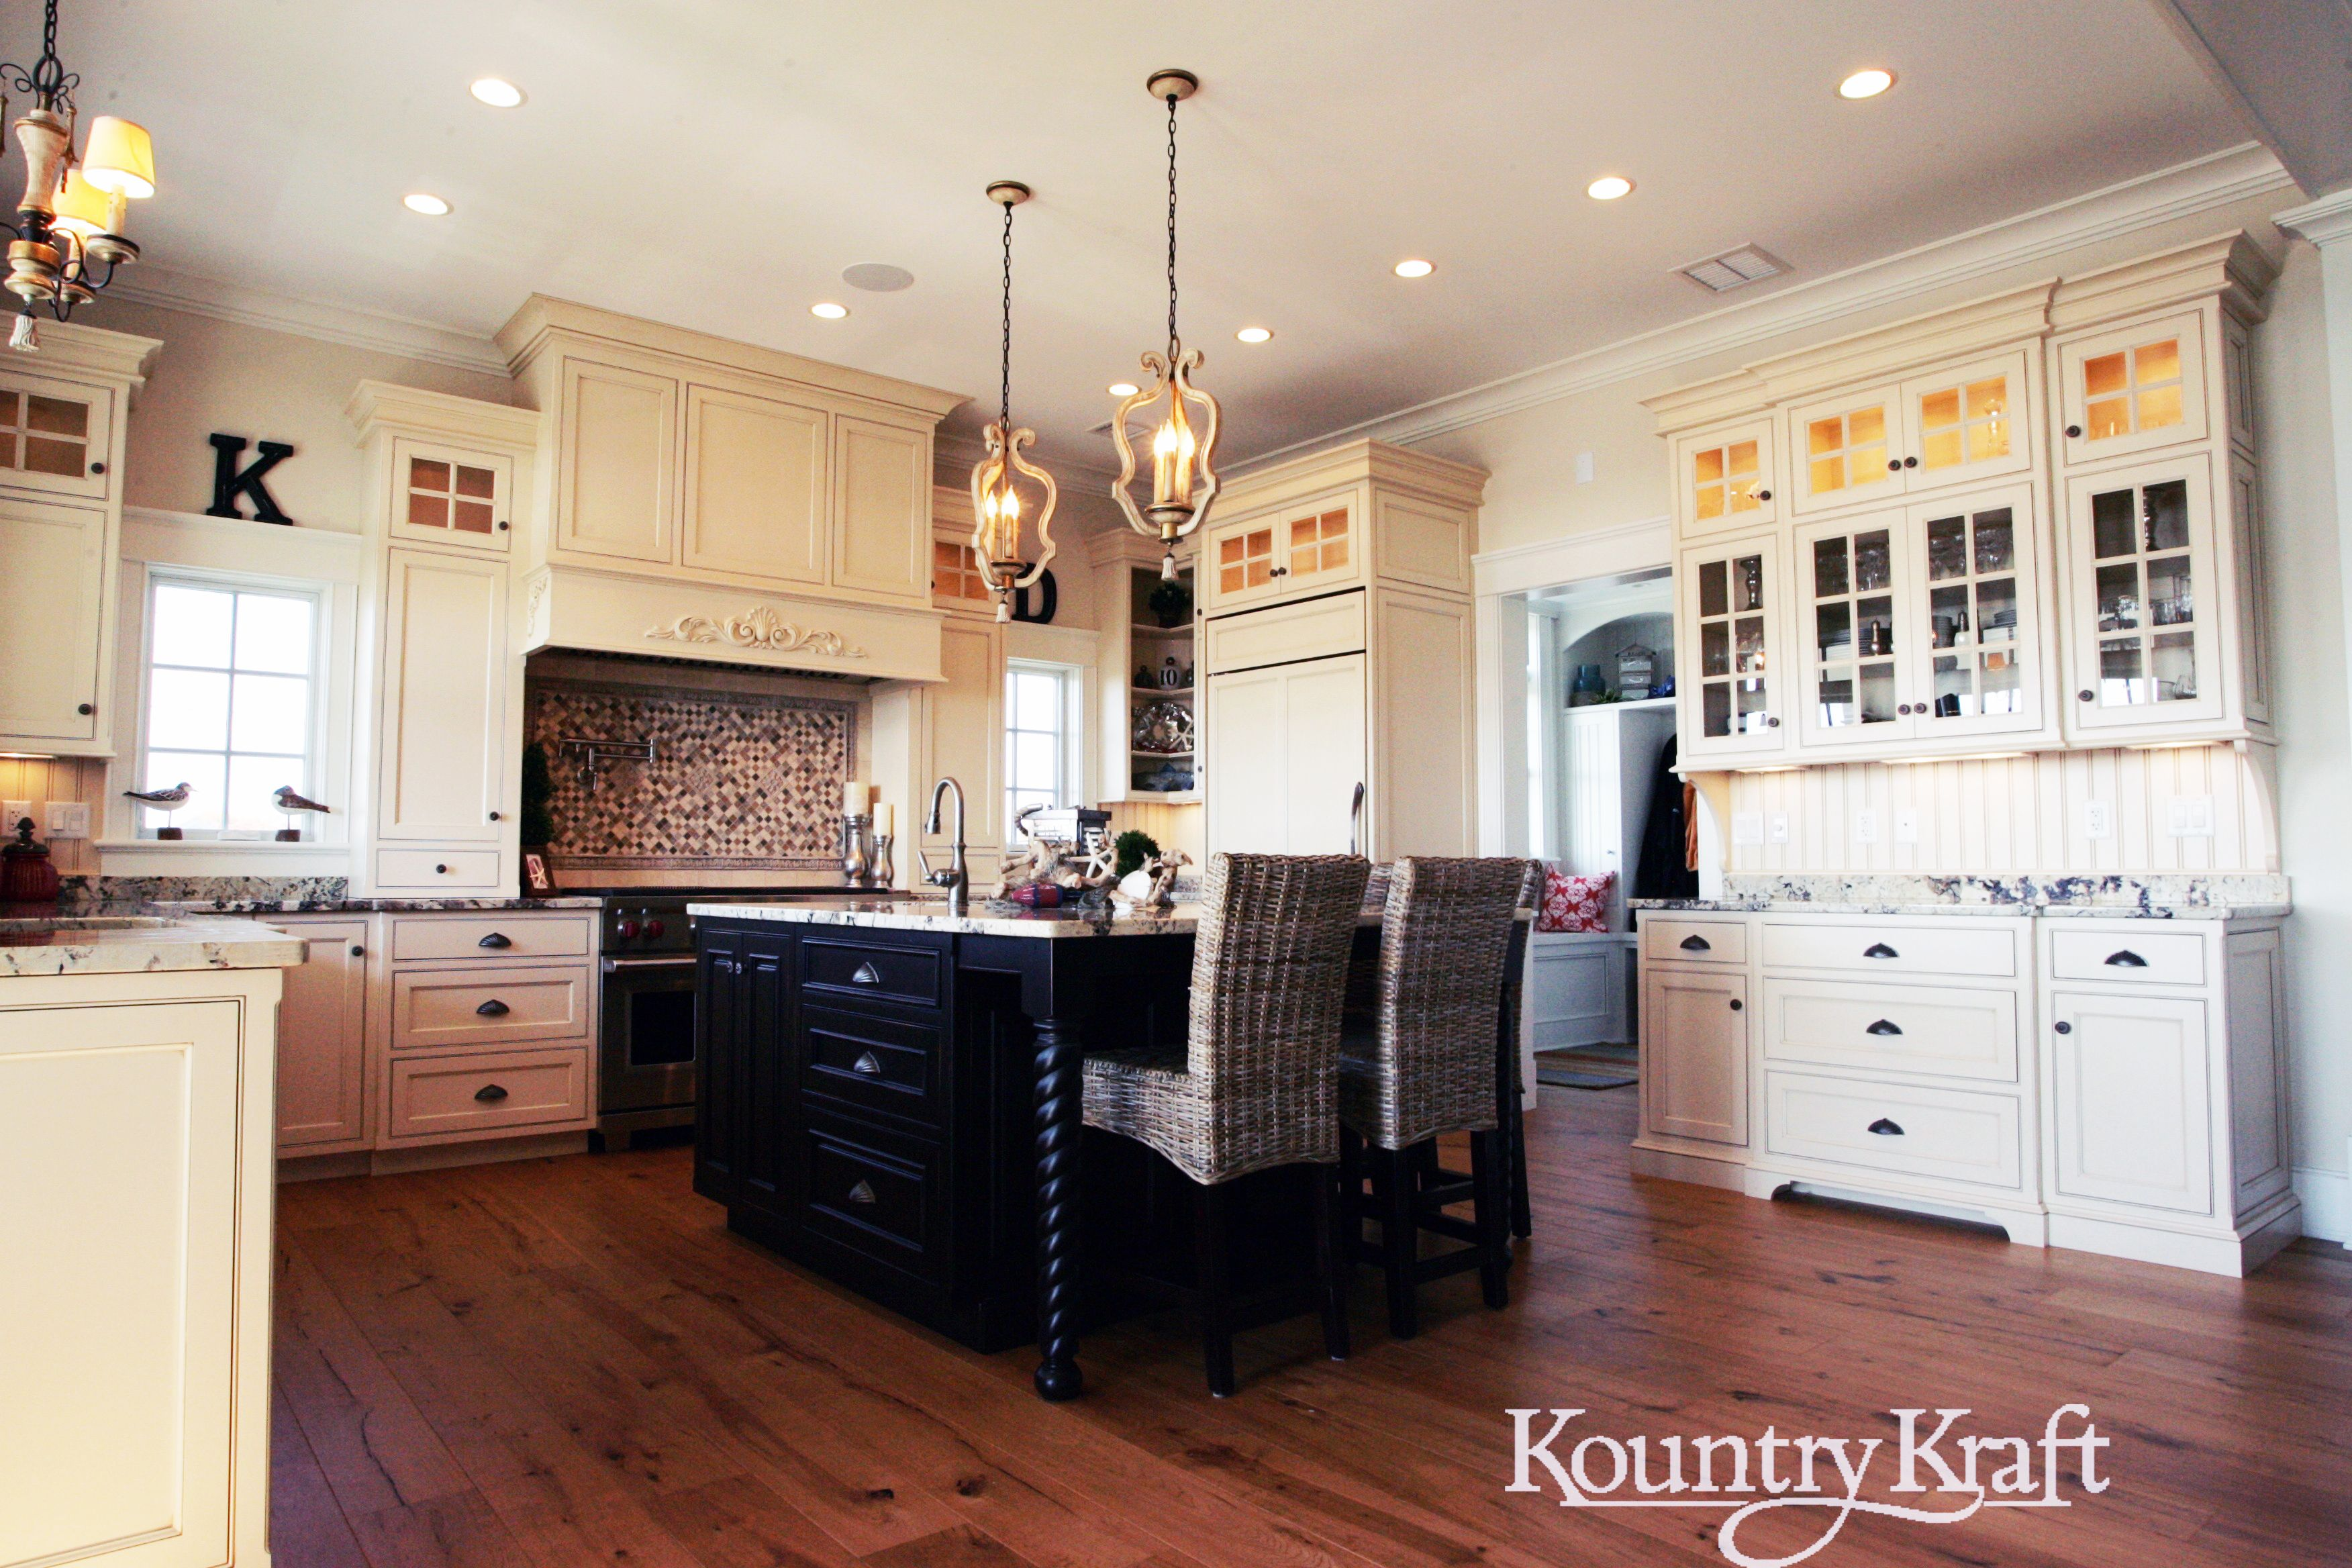 Custom Kitchen Cabinets Designed By Hanford Cabinet Woodworking In Old Saybrook Ct This Tradi Custom Kitchen Island Custom Kitchen Cabinets Shaker Cabinets